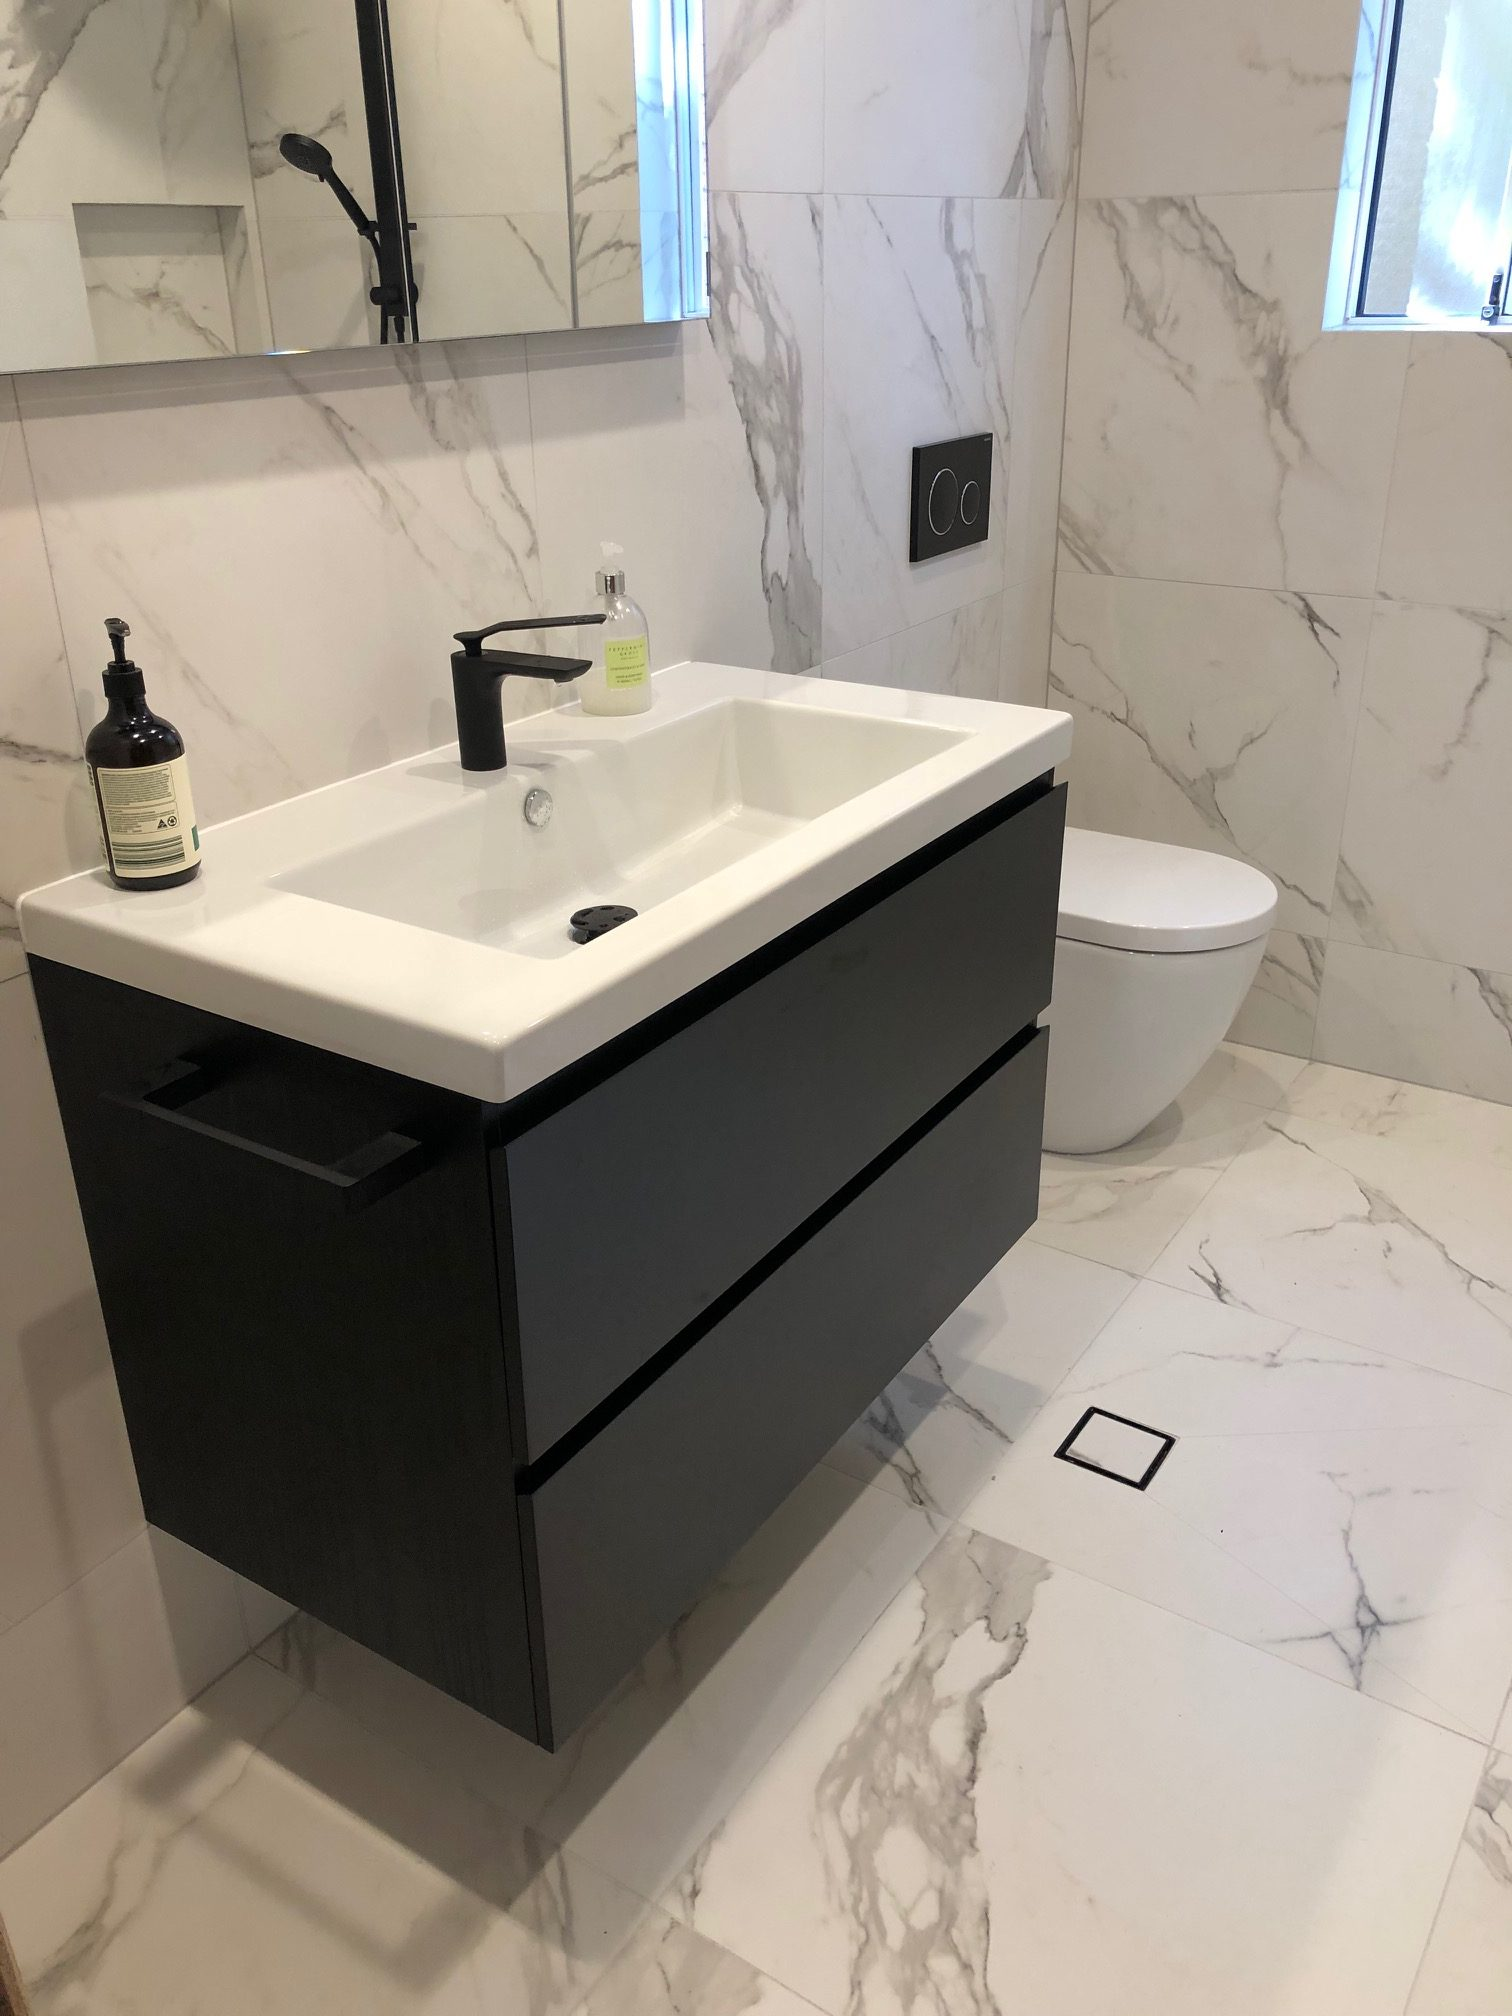 Bathroom with Warmtech Inscreed heating system